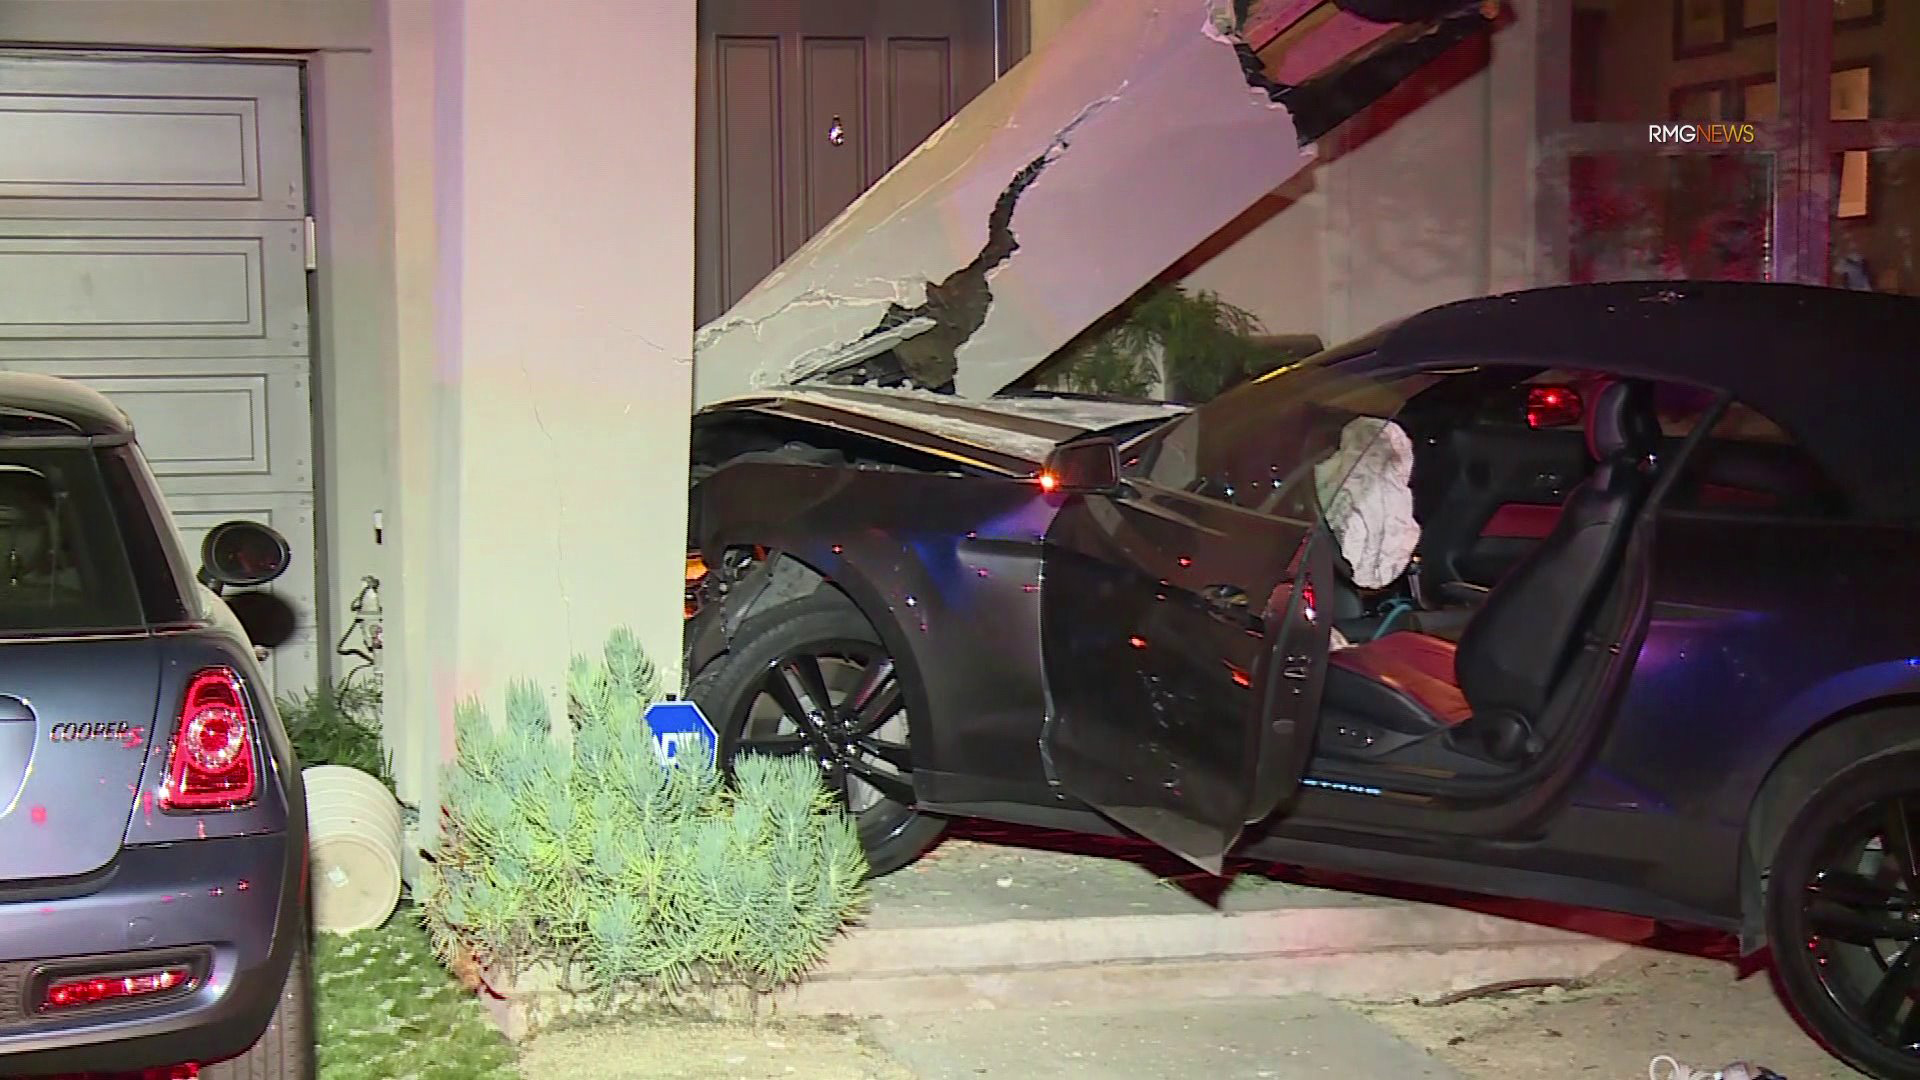 A Ford Mustang crashed into a West Hollywood home on Feb. 26, 2020. (RMG News)